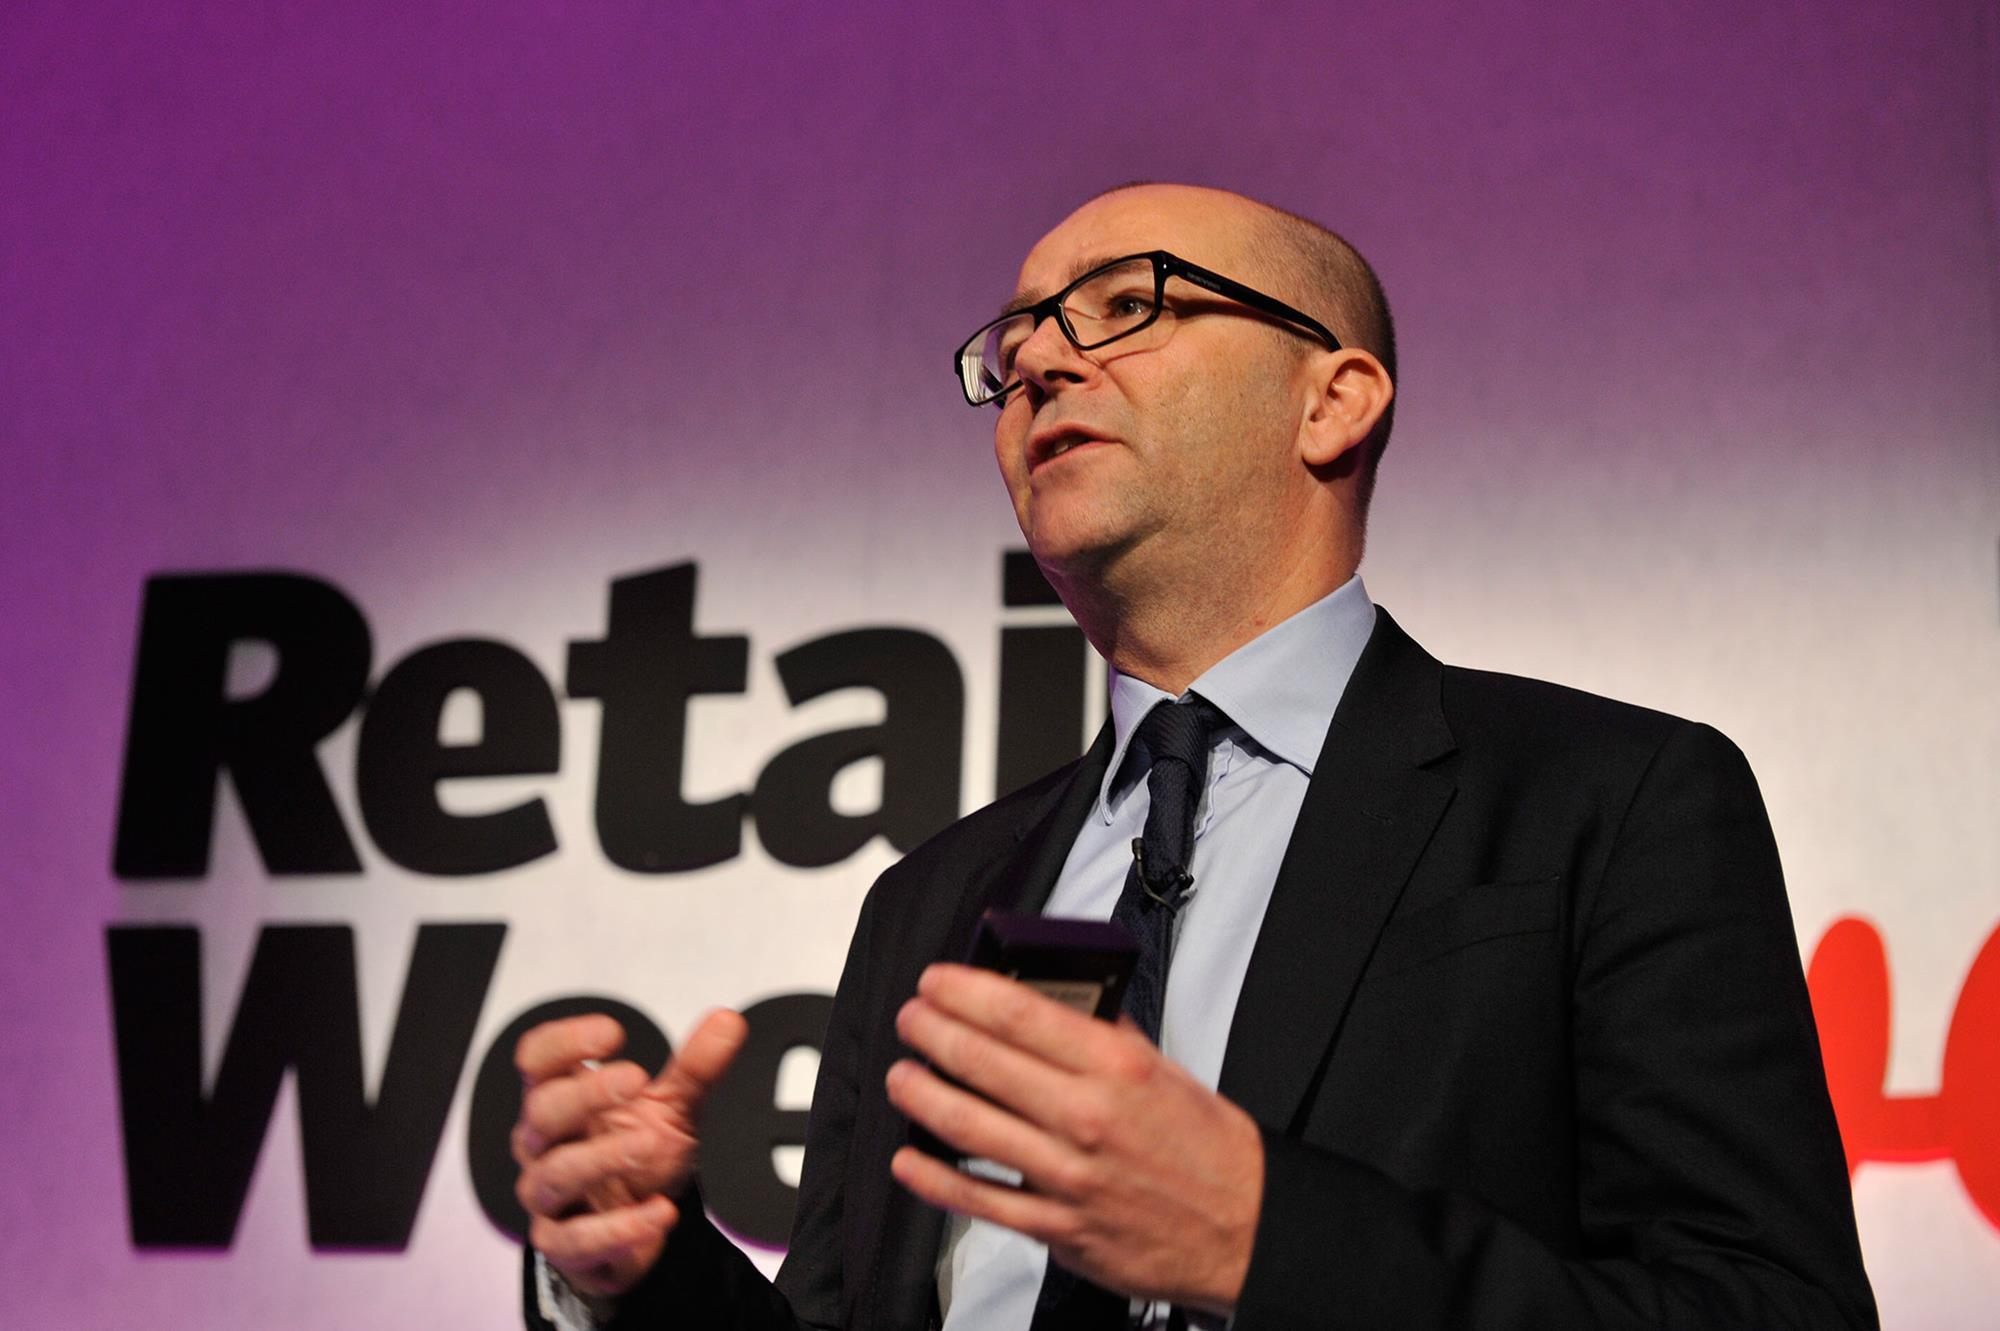 Profile Conviviality Retail s new managing director David